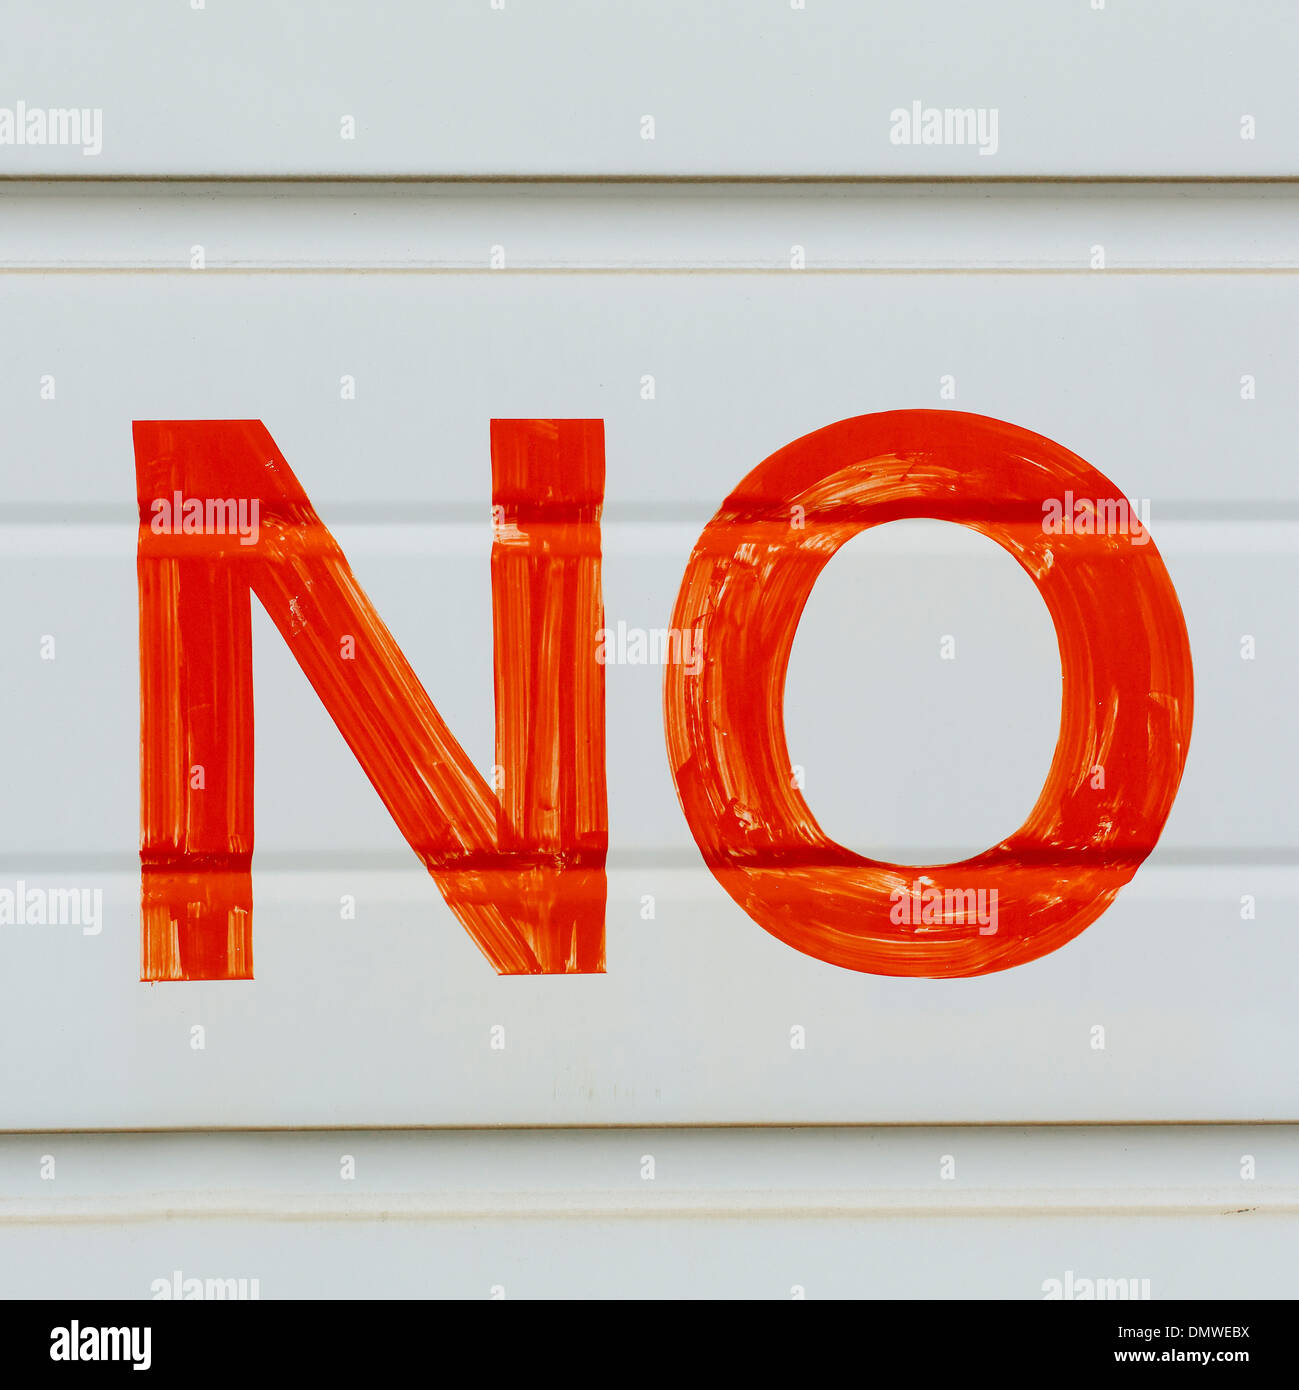 A large NO sign in red paint on a garage door indicating No Parking. - Stock Image